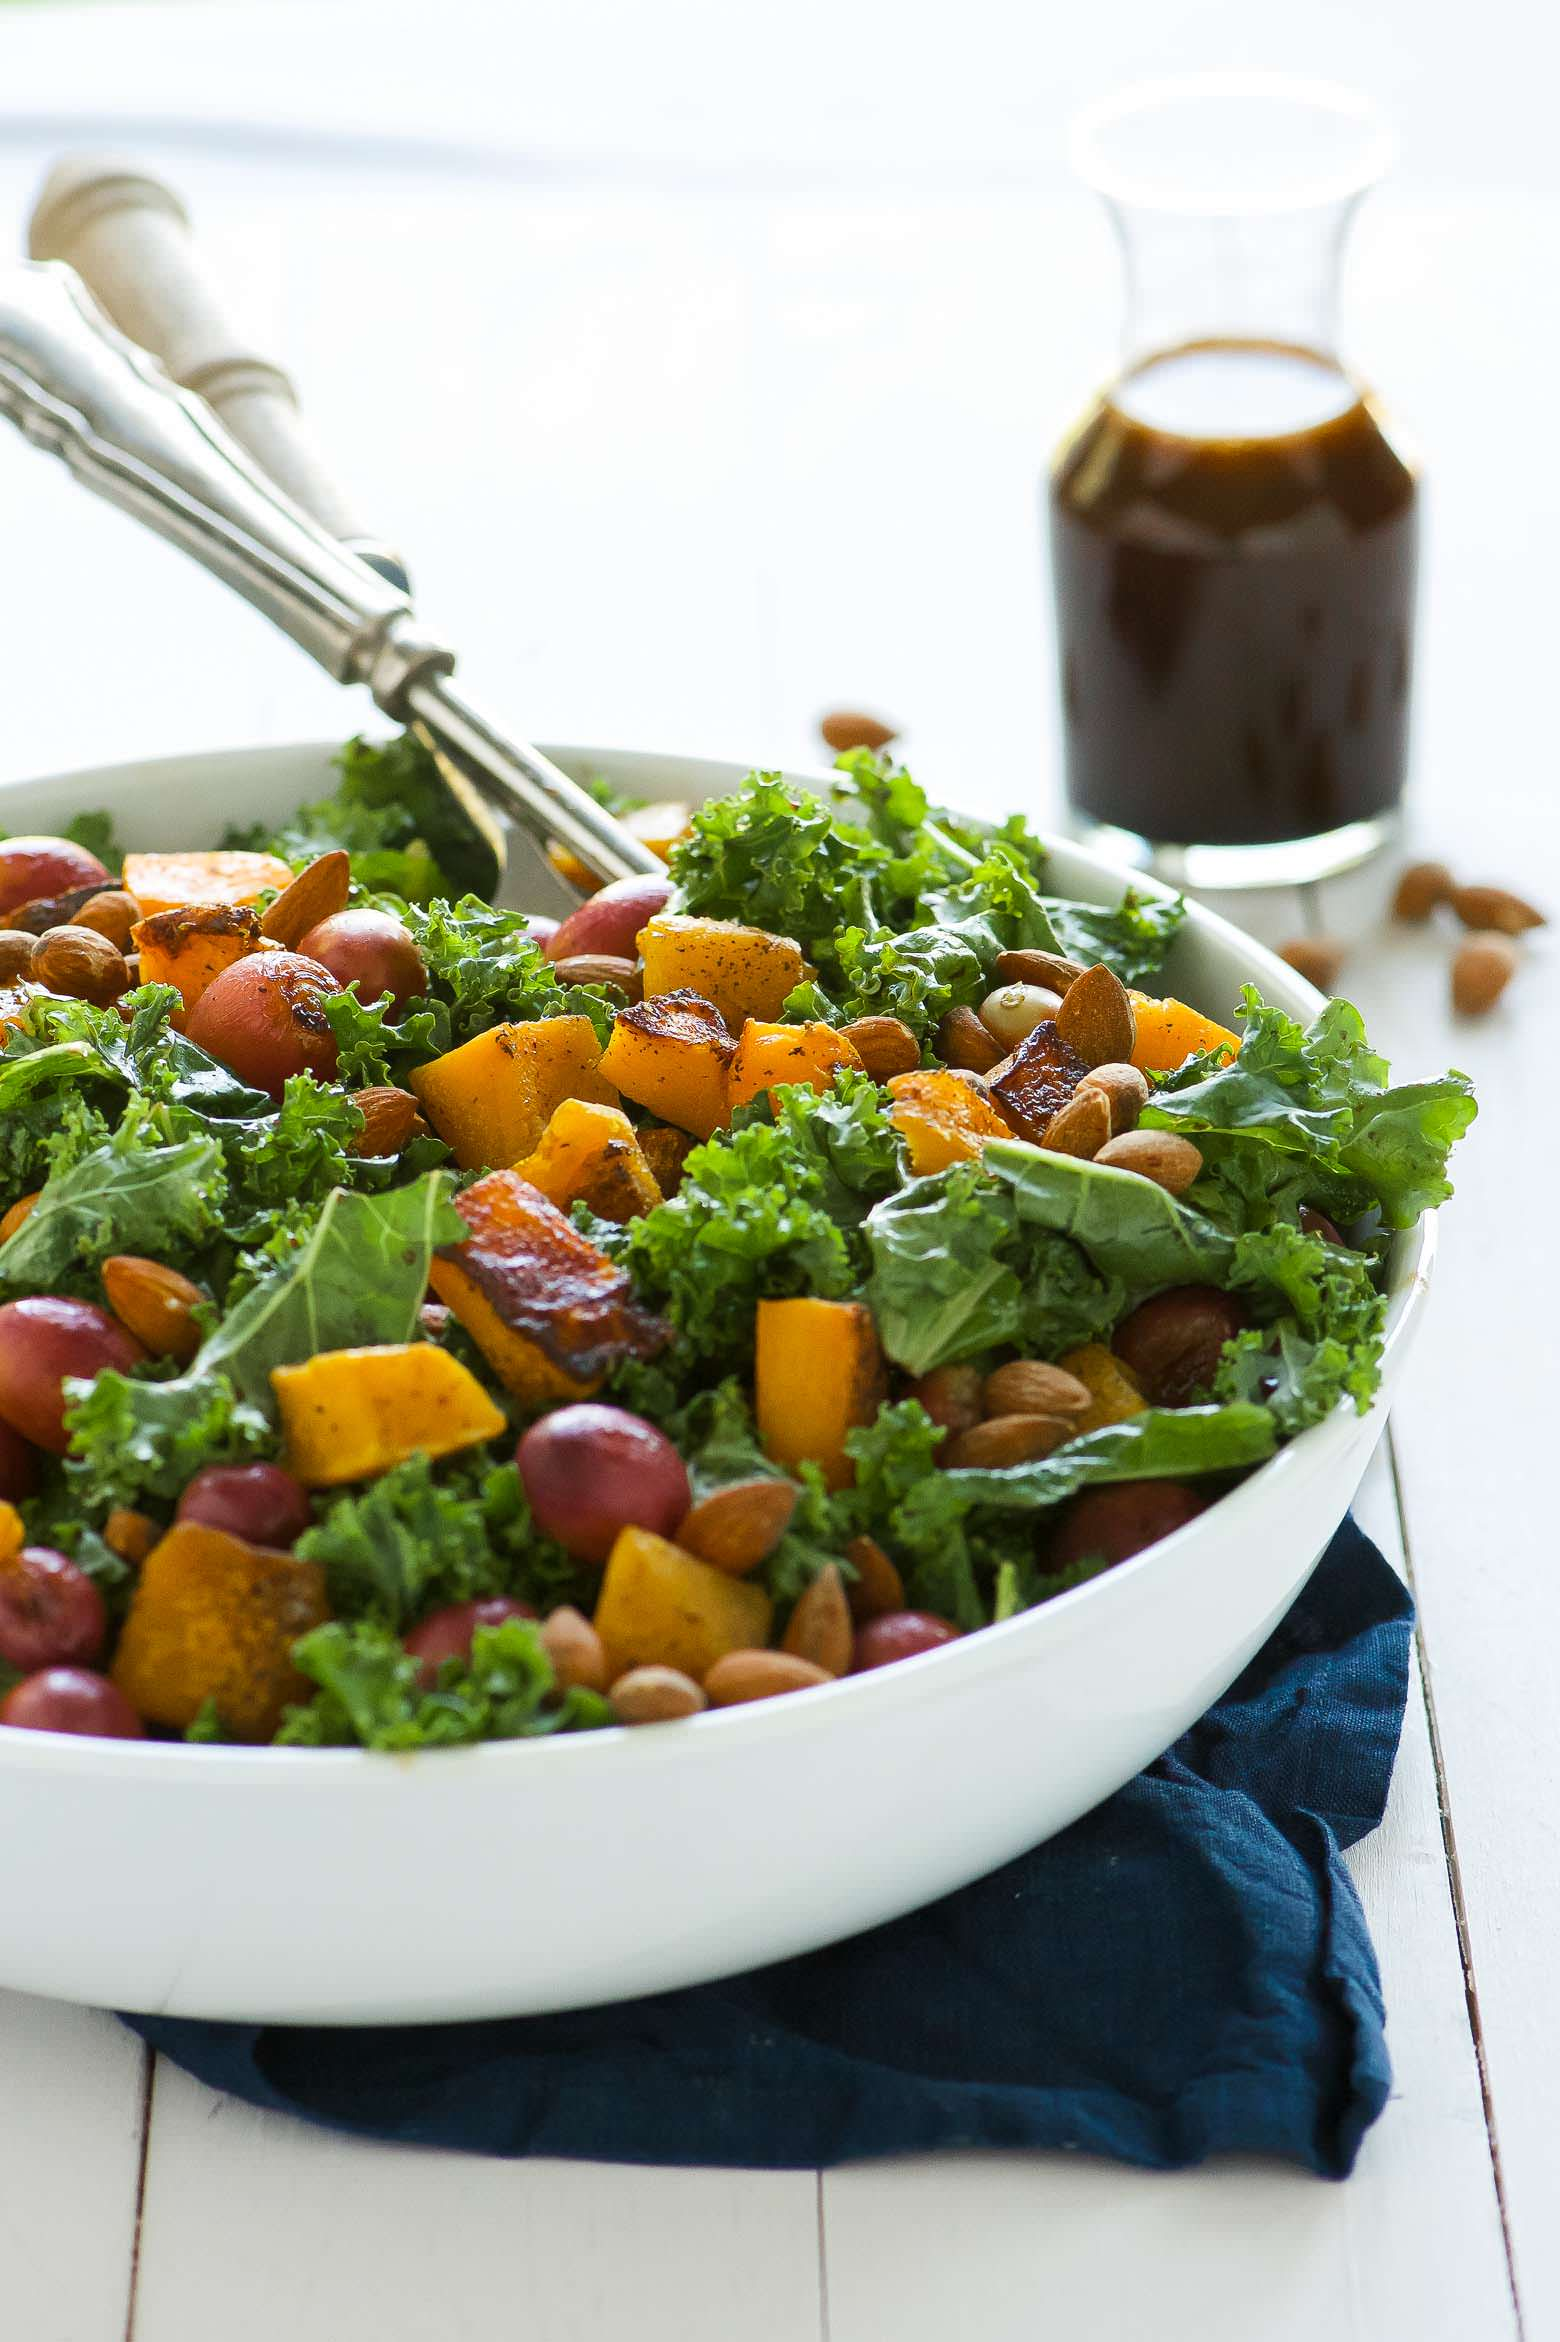 Massaged Kale Salad with Butternut Squash and Roasted Grapes is fall in a dish! It is healthy, simple and perfect for make-ahead lunches! Caramelized butternut squash and roasted grapes mix with balsamic massaged kale for a paleo and vegan friendly salad!